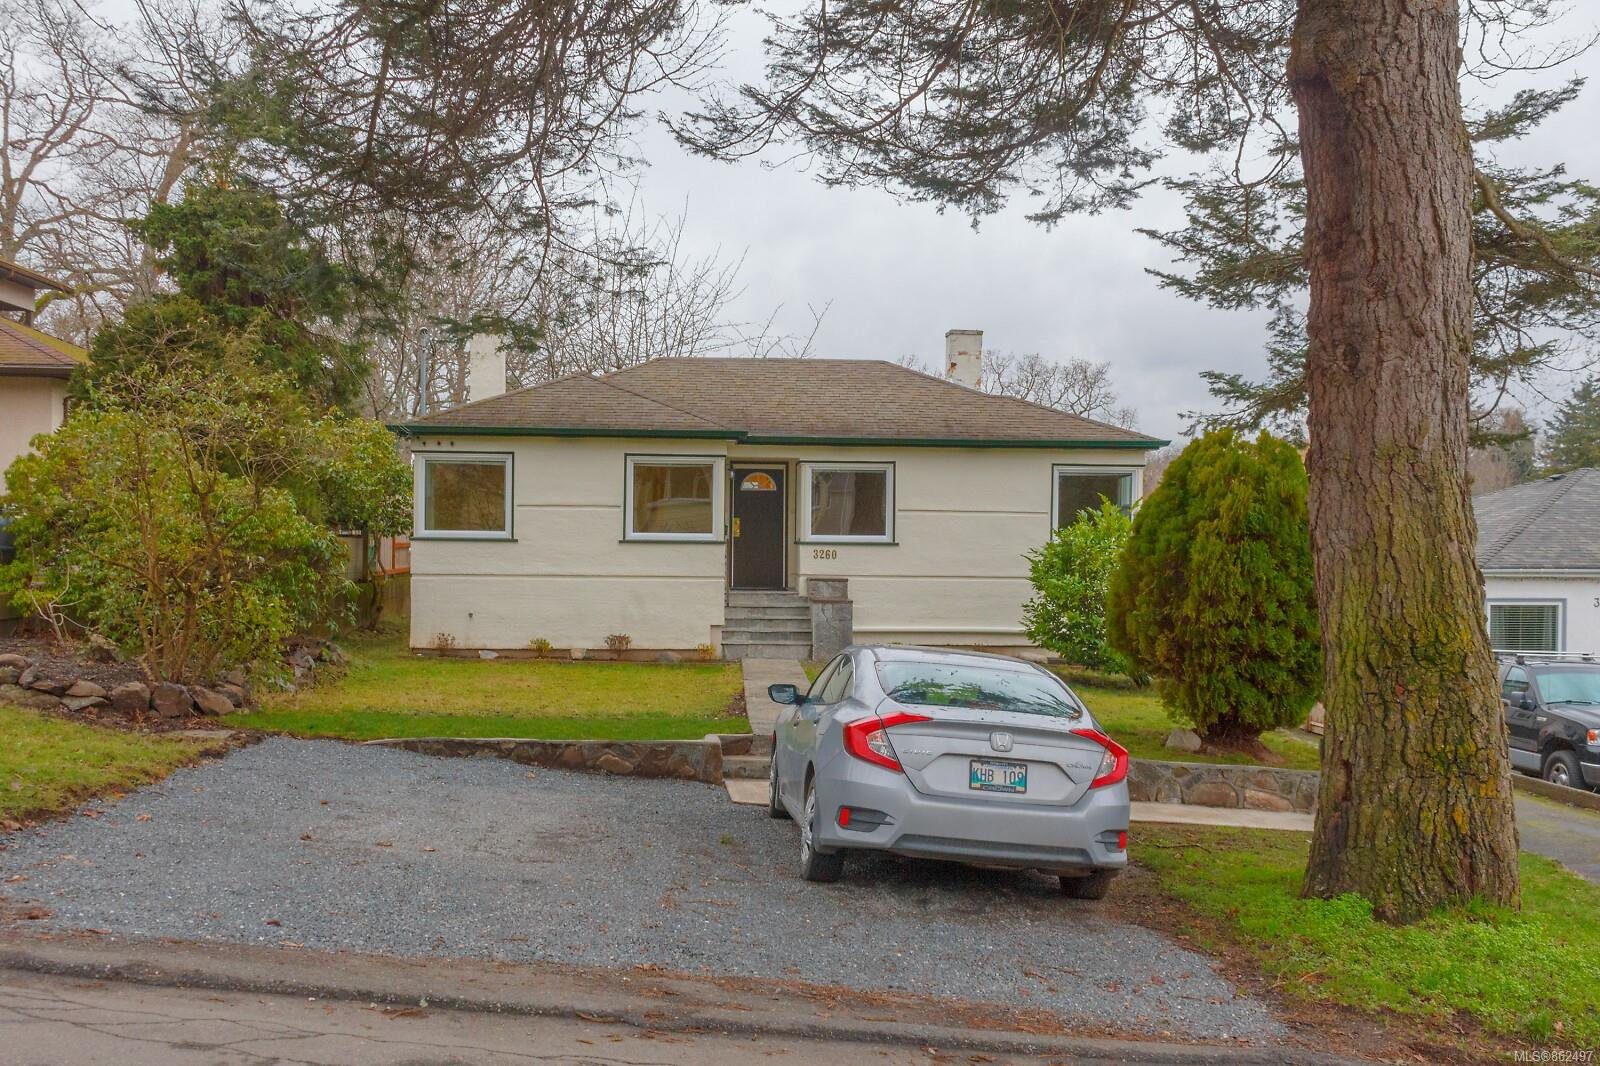 Main Photo: 3260 Bellevue Rd in : SE Maplewood House for sale (Saanich East)  : MLS®# 862497